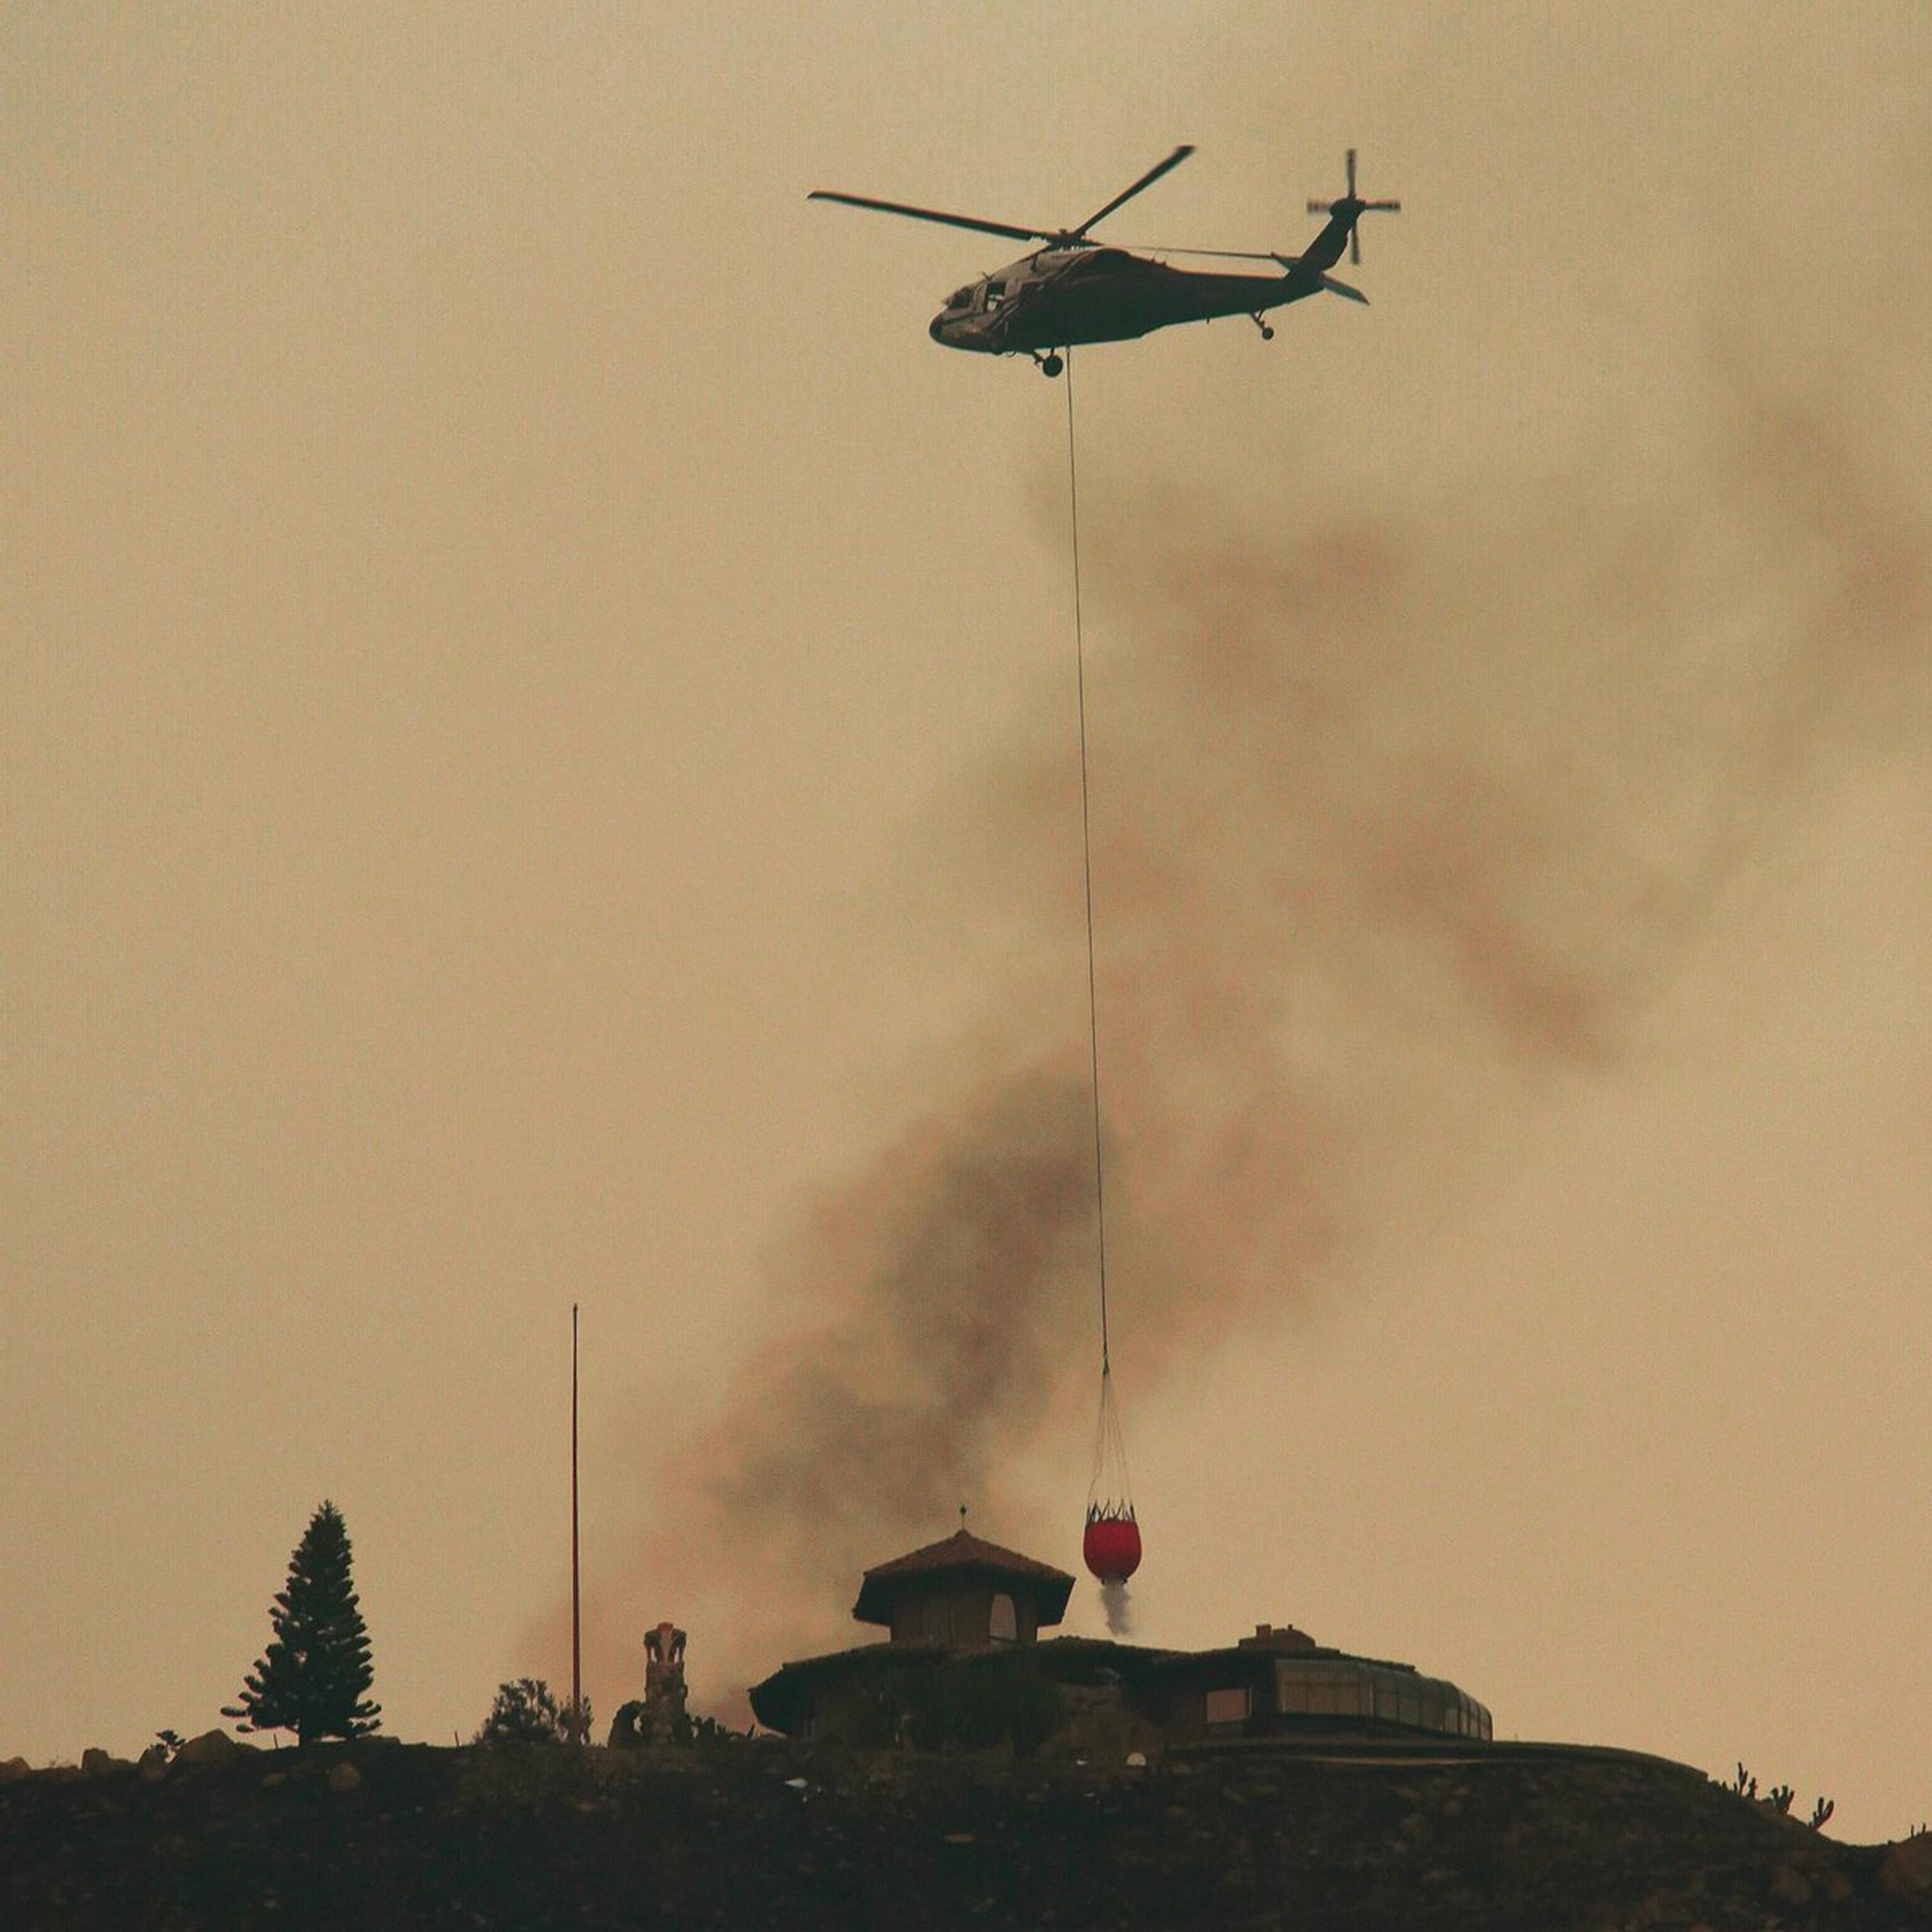 In this photo provided by the Santa Barbara County Fire Department, a helicopter makes water drop near a house that was not on fire on a hill above Bella Vista Drive in Montecito, Calif., as the fight to contain a wildfire continues Tuesday, Dec. 12, 2017. The fifth-largest wildfire in California history expanded Tuesday, ripping through dry brush atop a coastal ridge while crews struggled to keep flames from roaring down into neighborhoods amid fears of renewed winds. (Mike Eliason/Santa Barbara County Fire Department via AP)